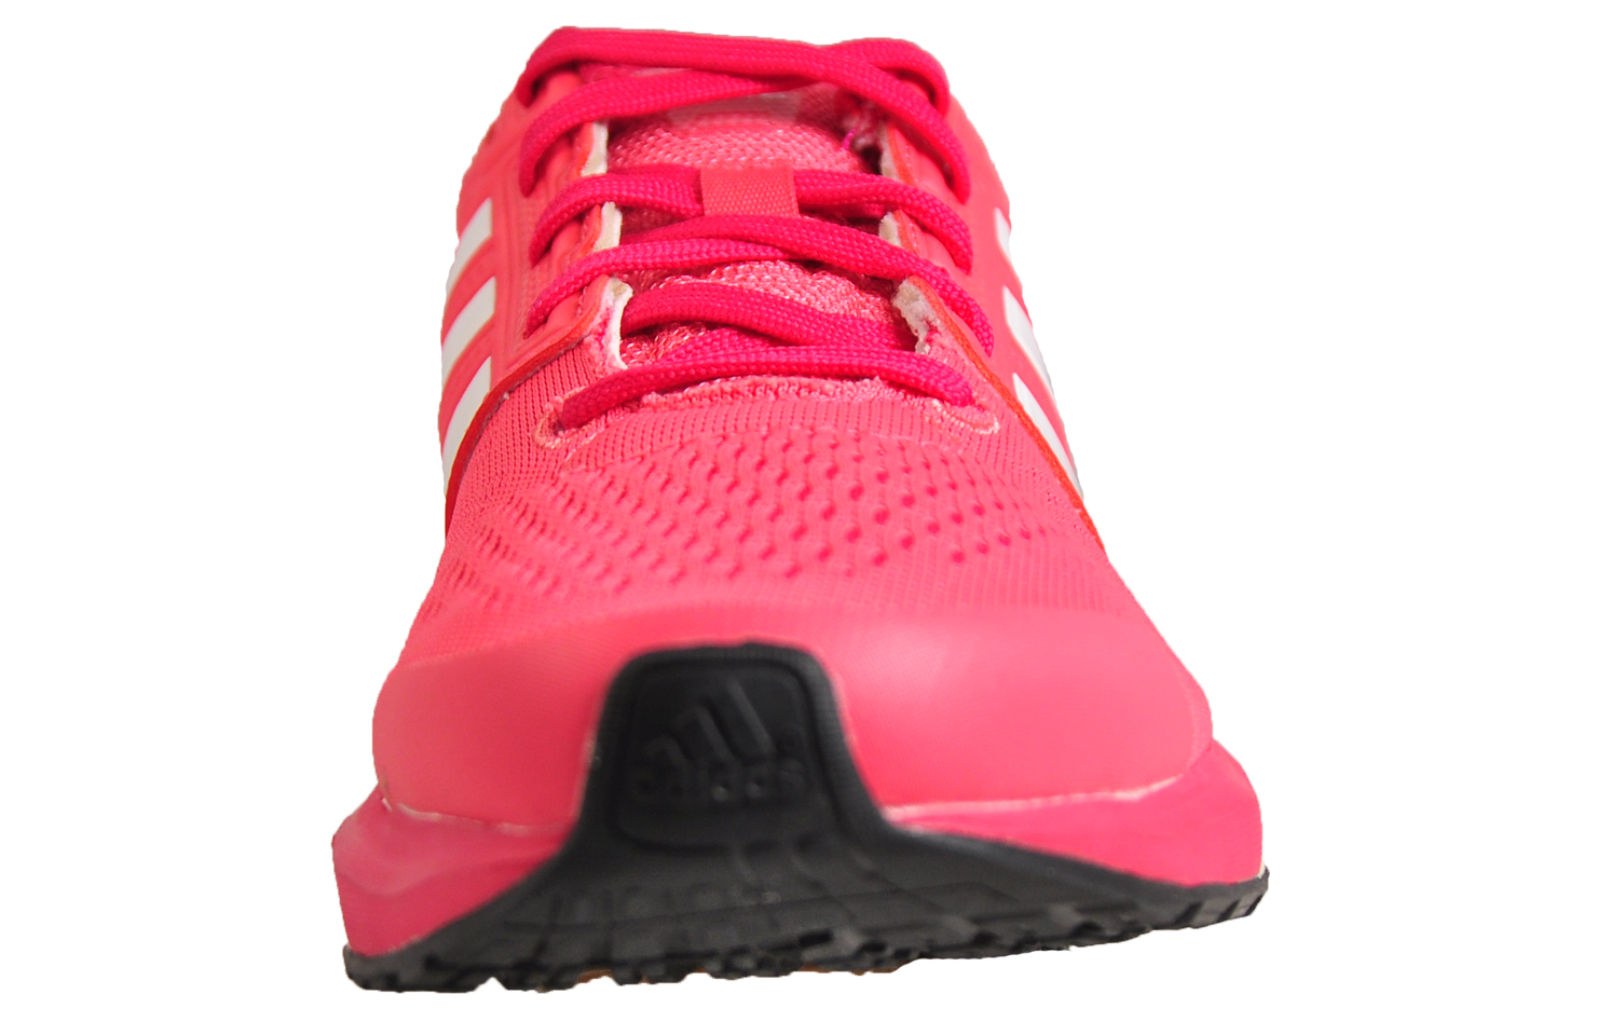 Adidas Revenge Boost 2 Women/'s Premium Running Shoes Gym Trainers Pink